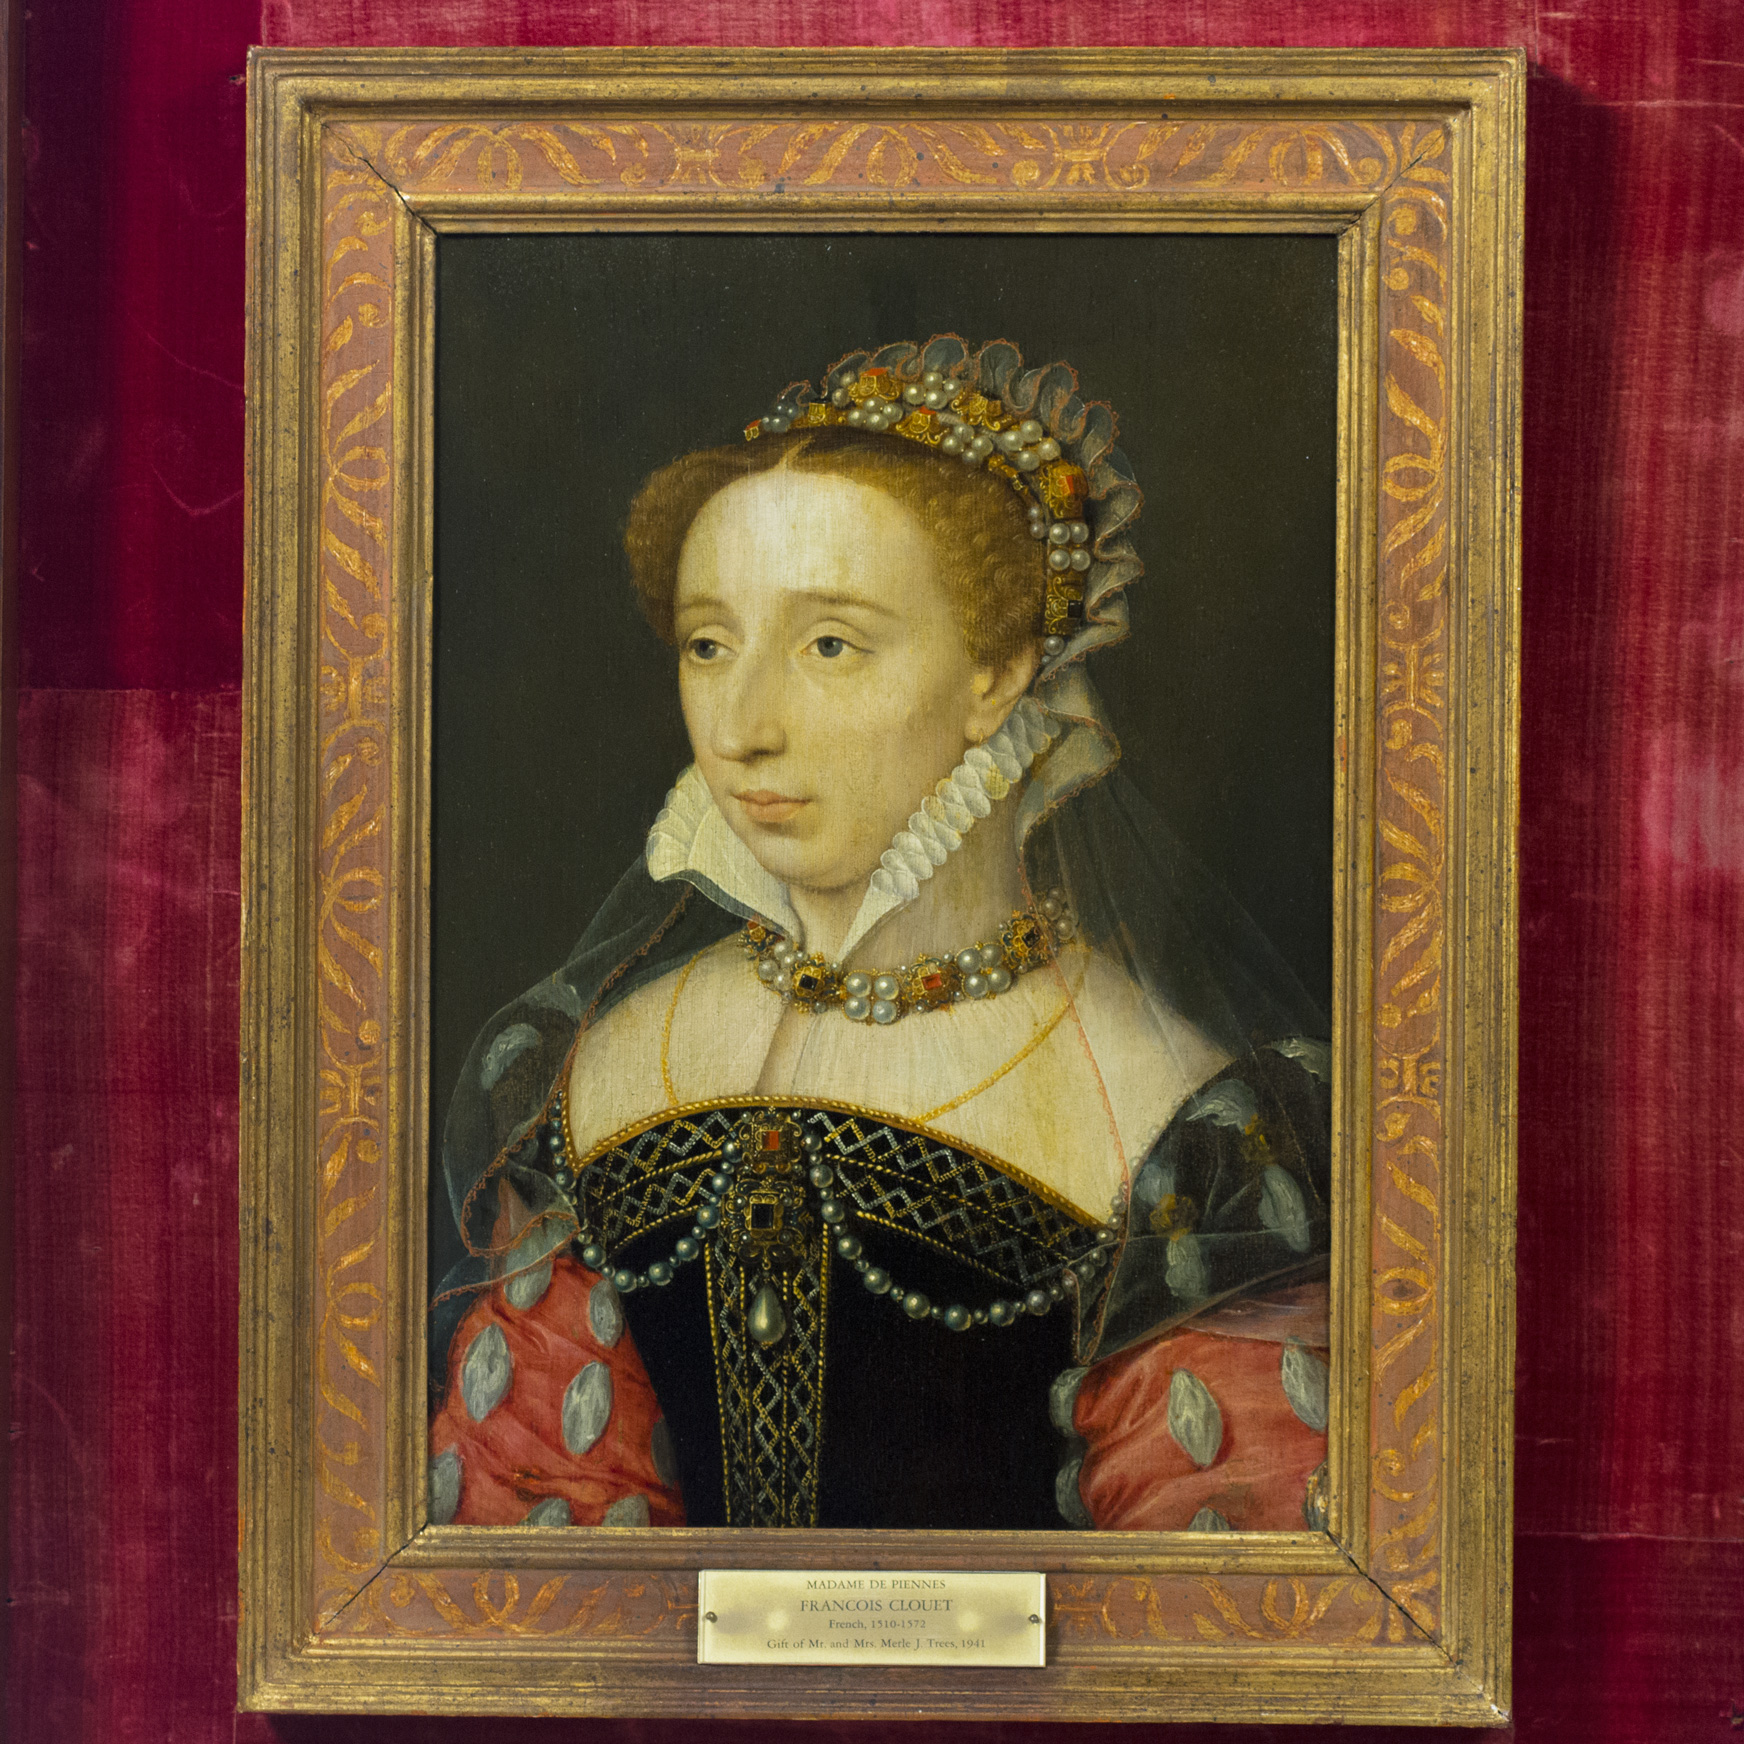 François Clouet. Portrait of Diane of France, Daughter of King Henri II, ca. 1555. Oil on panel. Gift of Merle J. and Emily N. Trees, 1941-1-1.